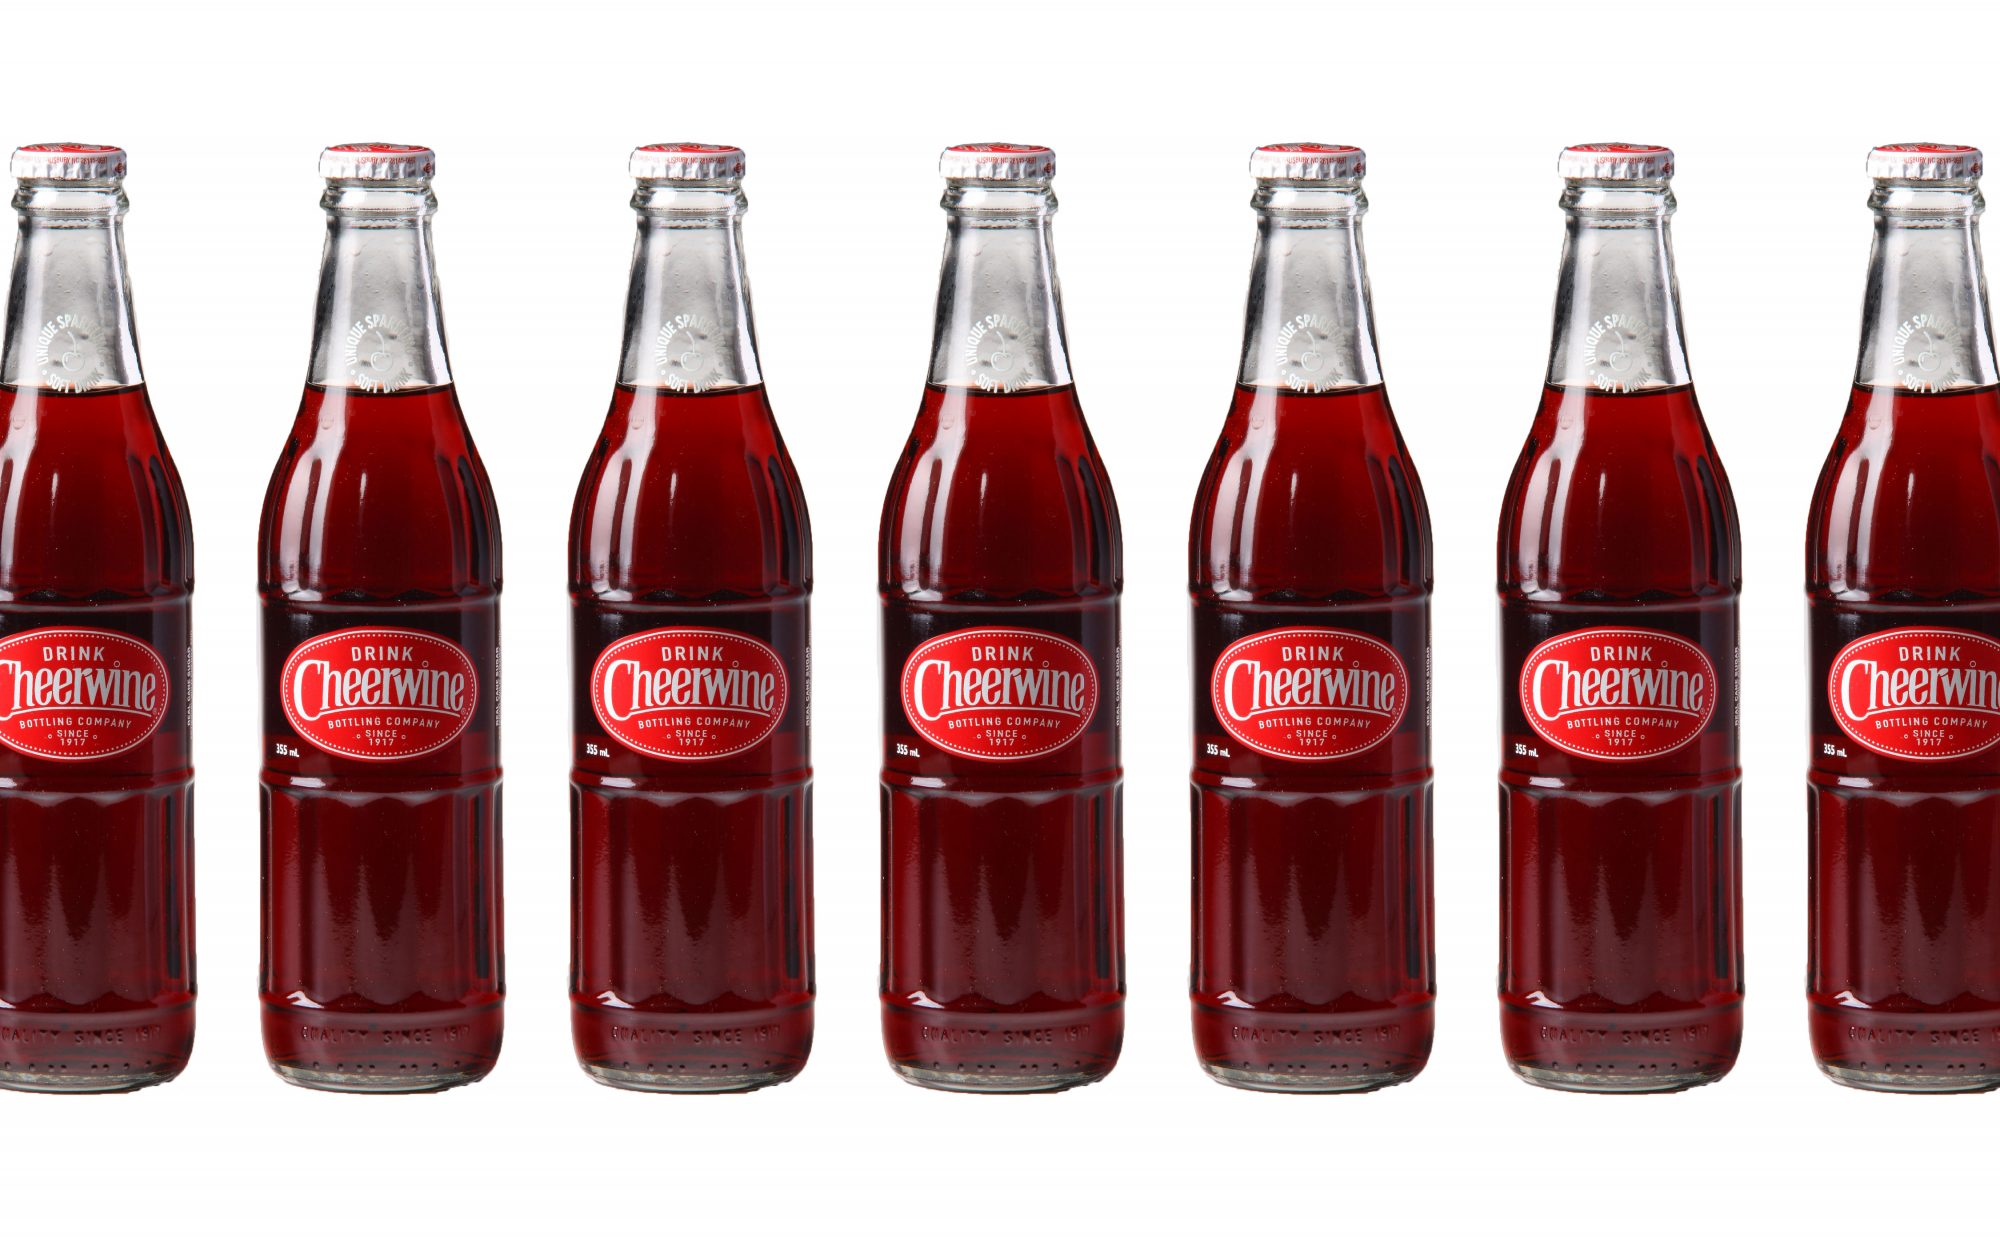 10 Things To Know About Cheerwine, the Beloved Southern Soft Drink